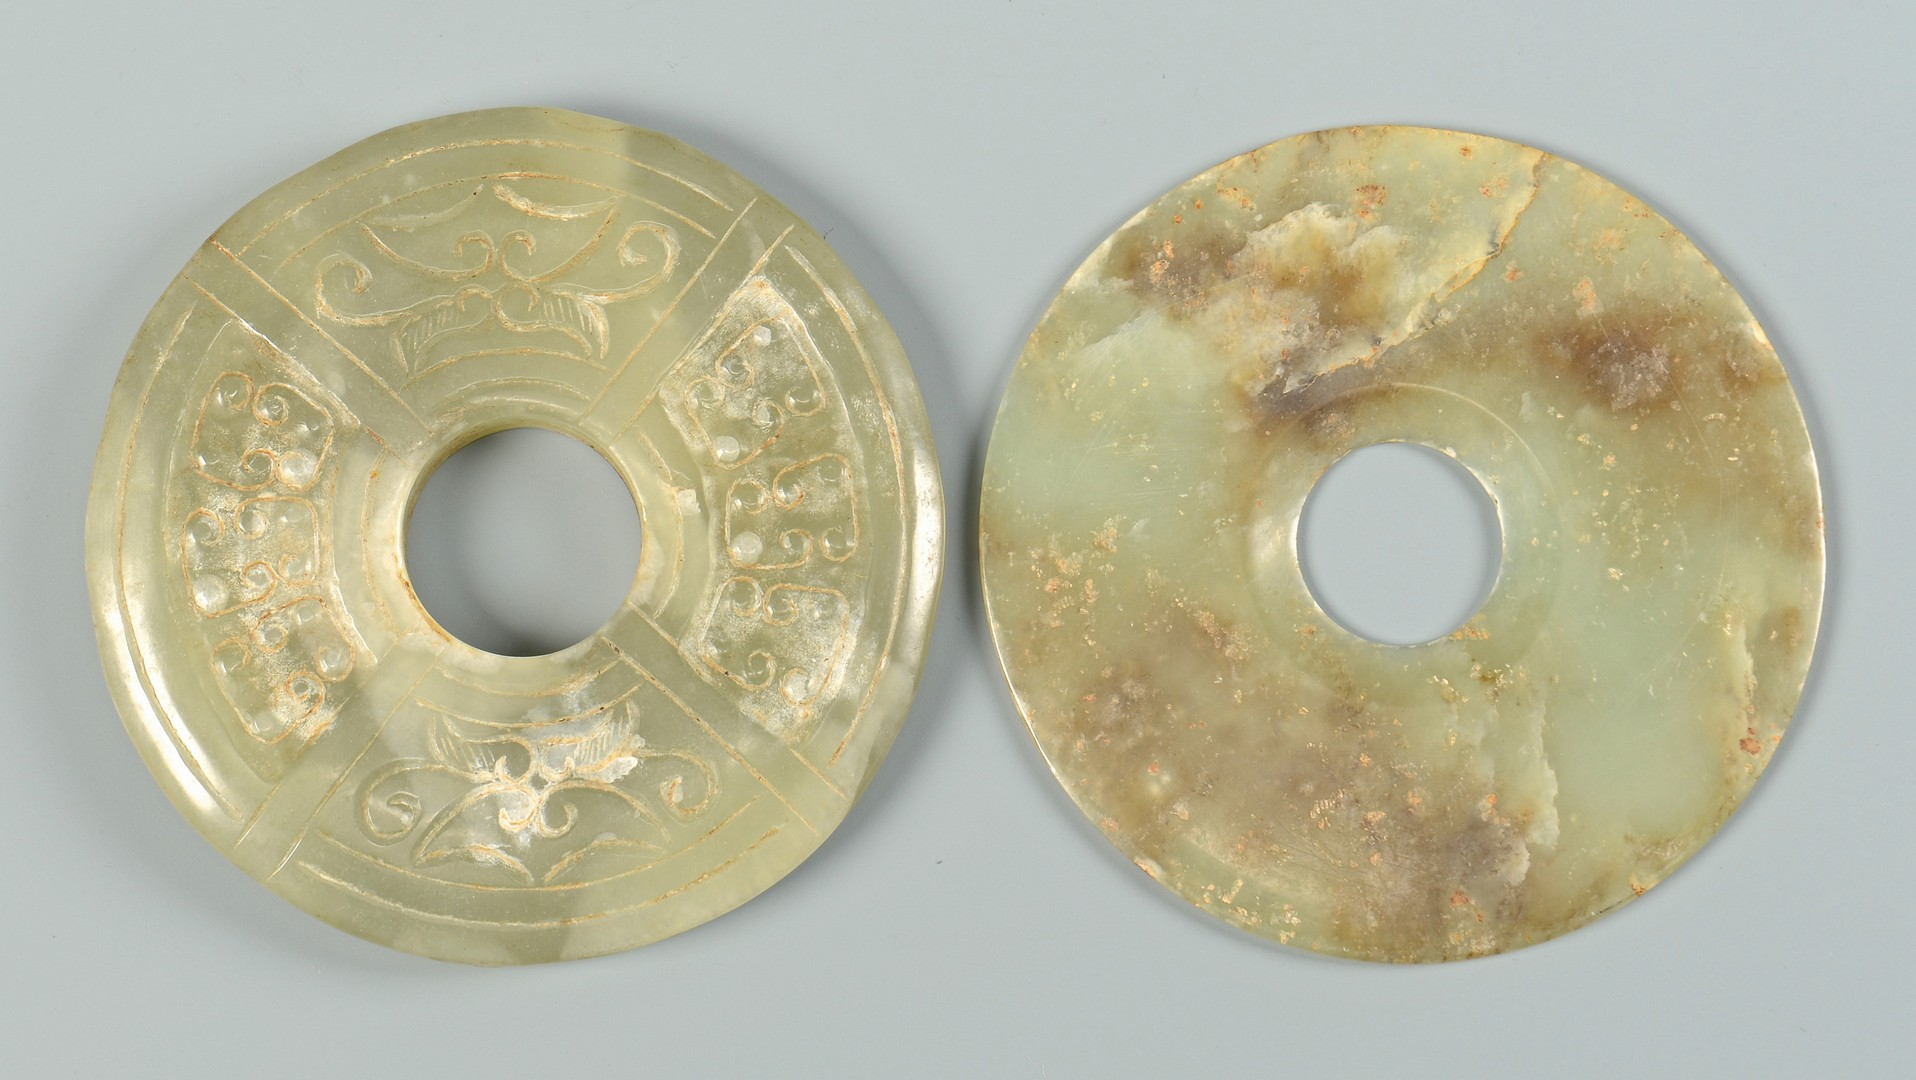 Lot 3832370: 4 Carved Chinese Jade & Hardstone Discs